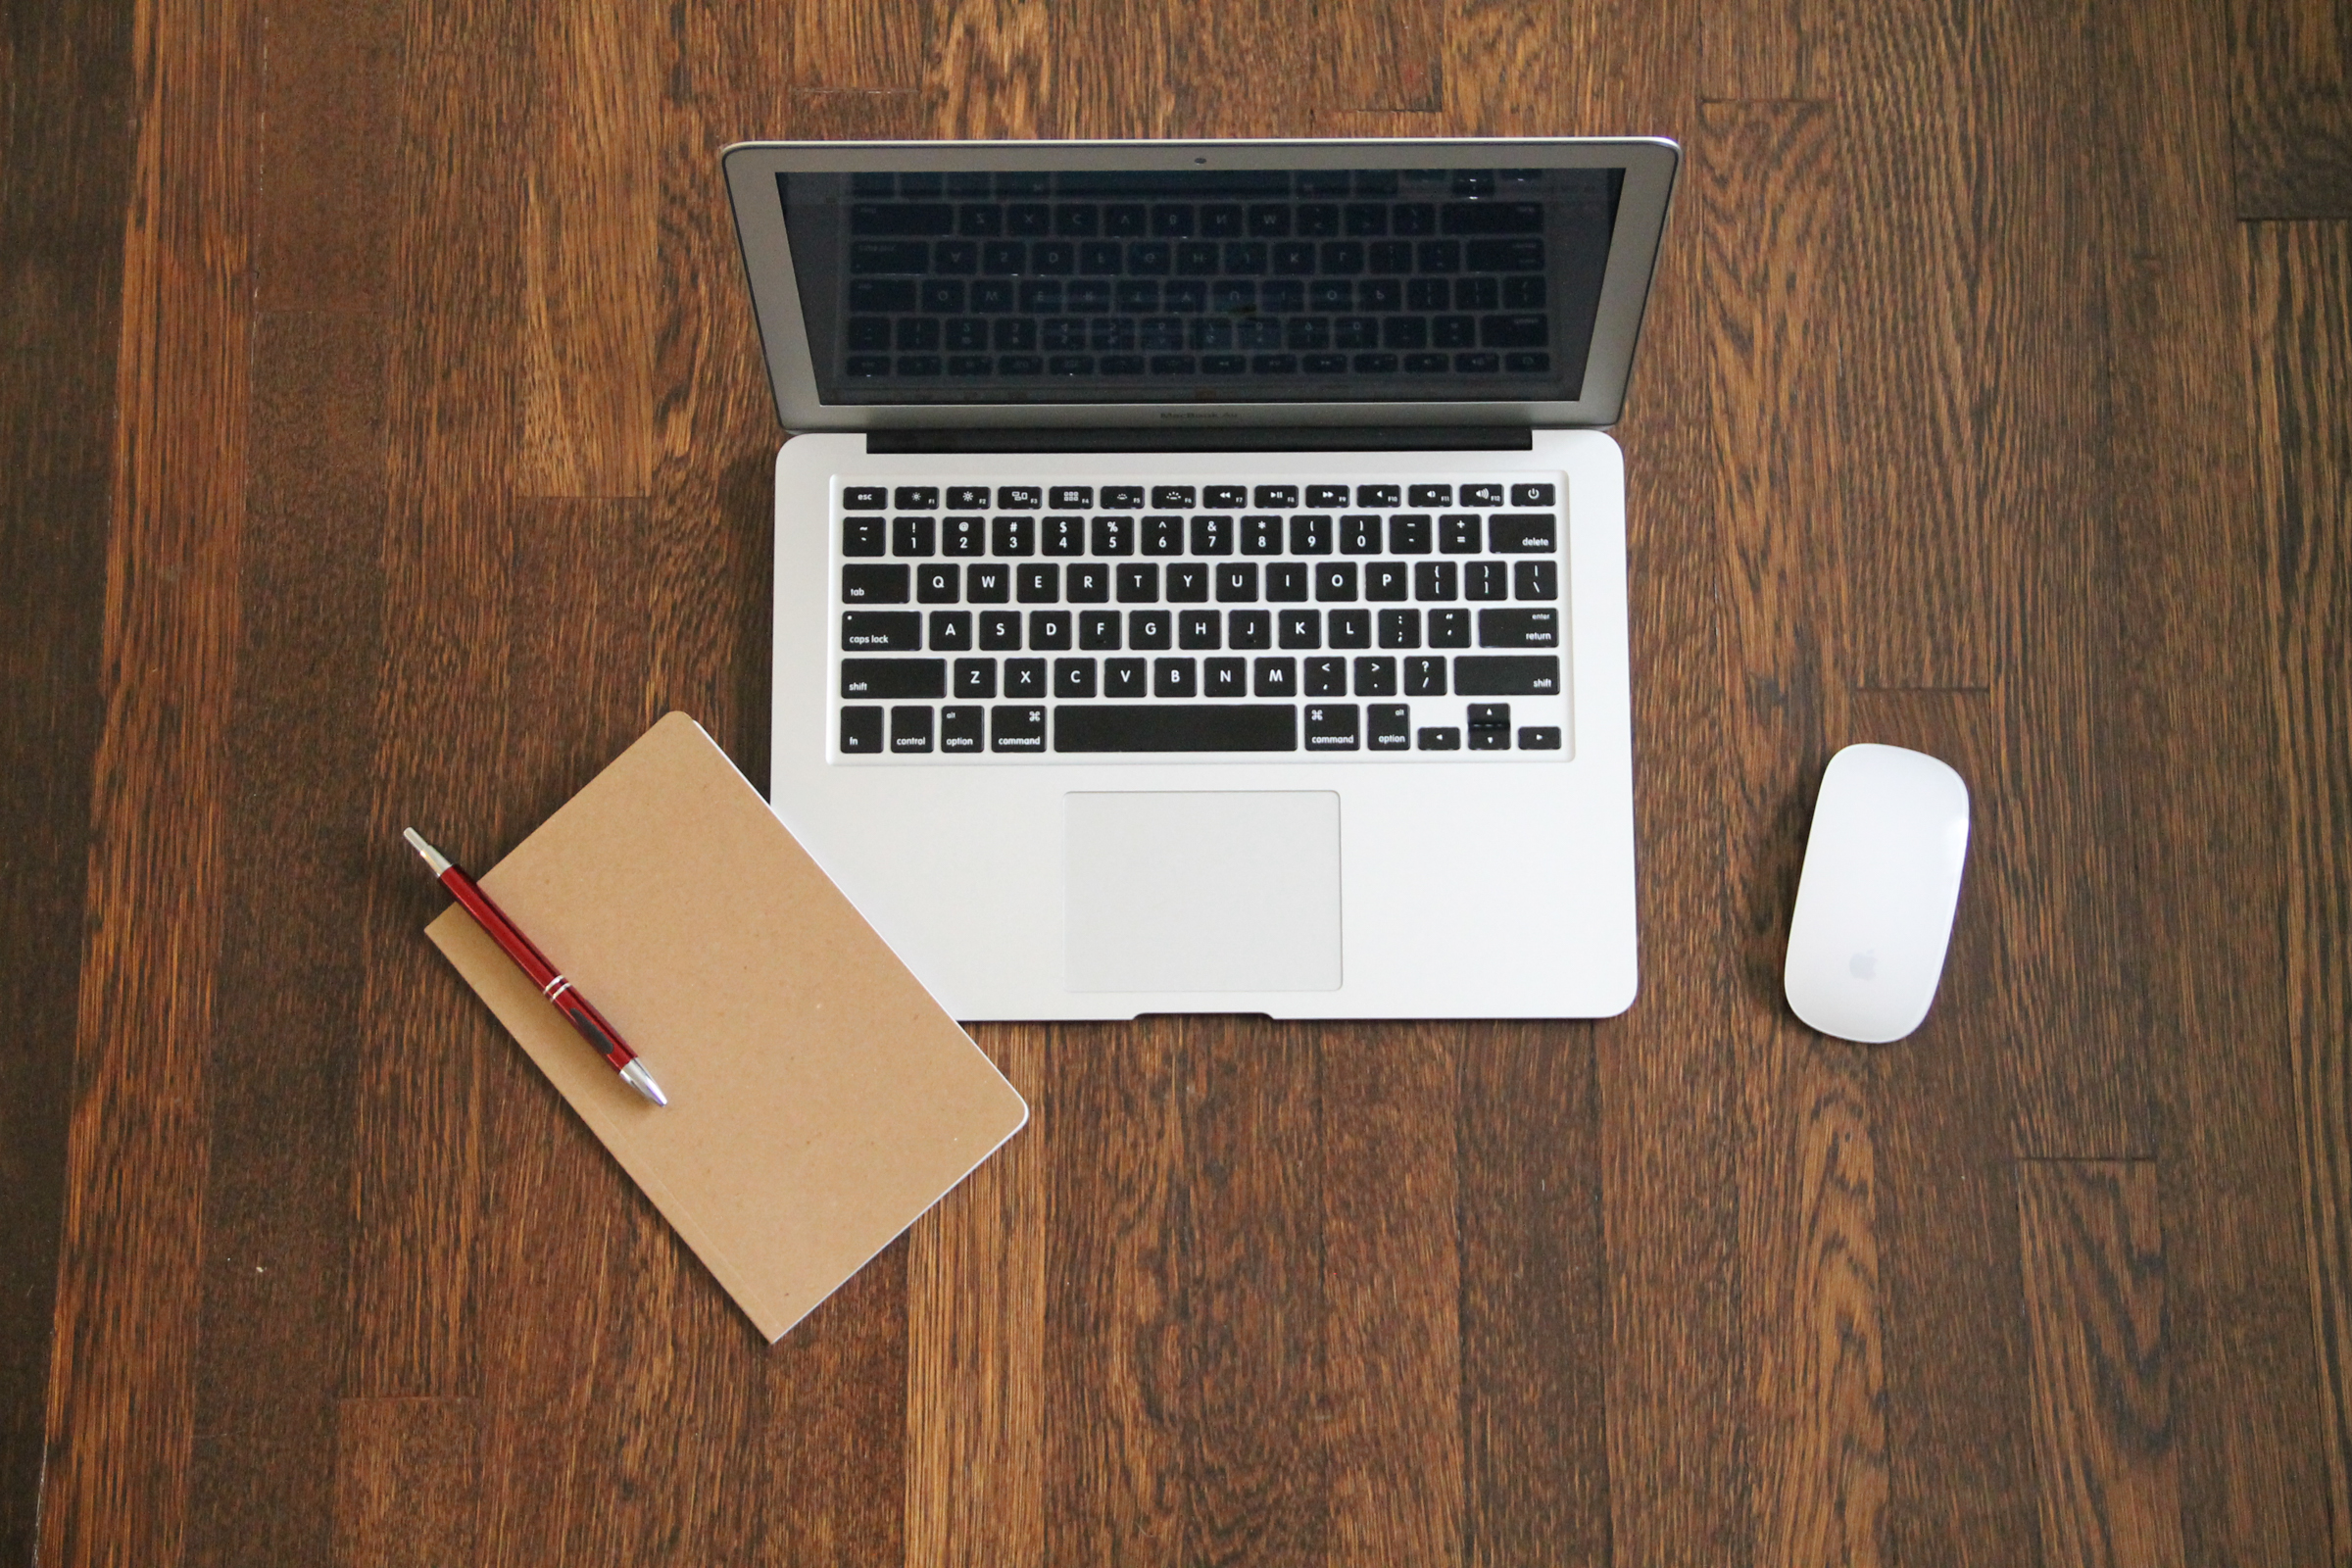 macbook-air-laptop-journal-mouse